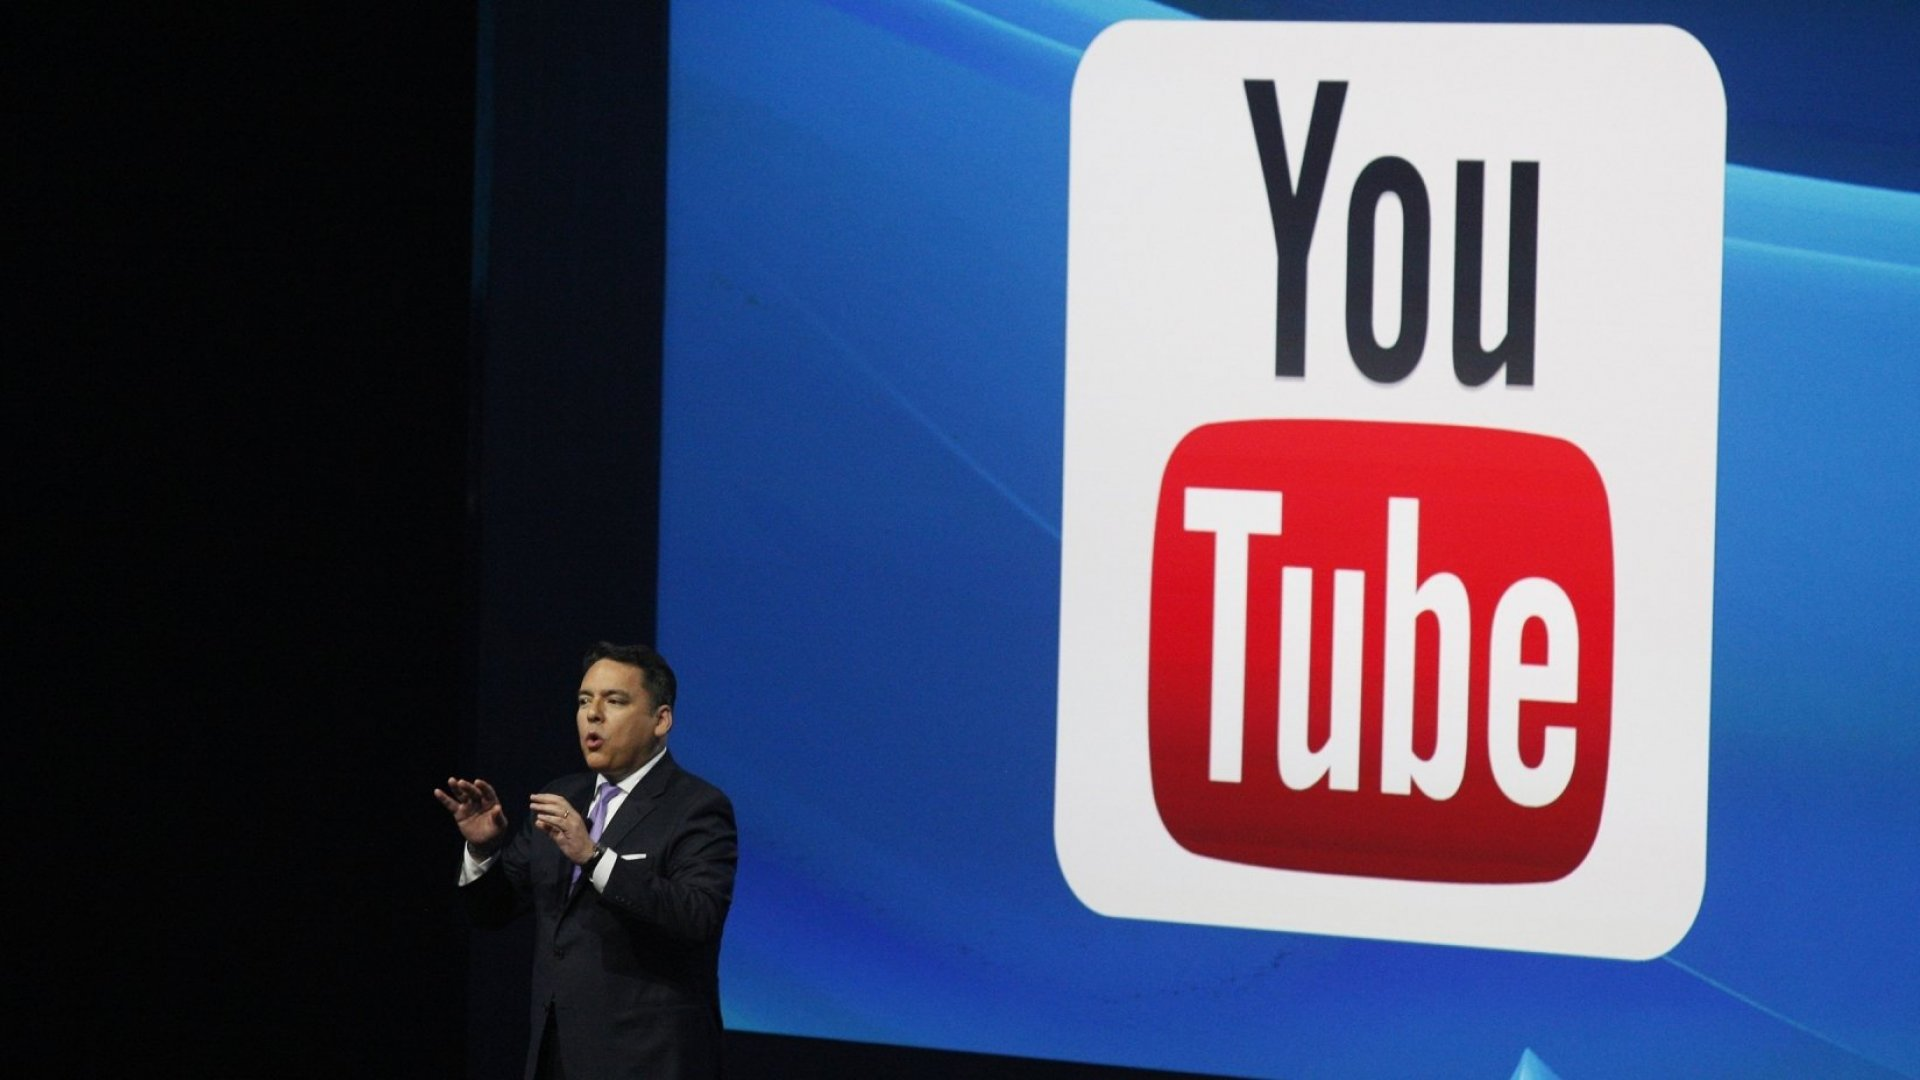 How to Use YouTube to Reach More People and Make More Money in 2018